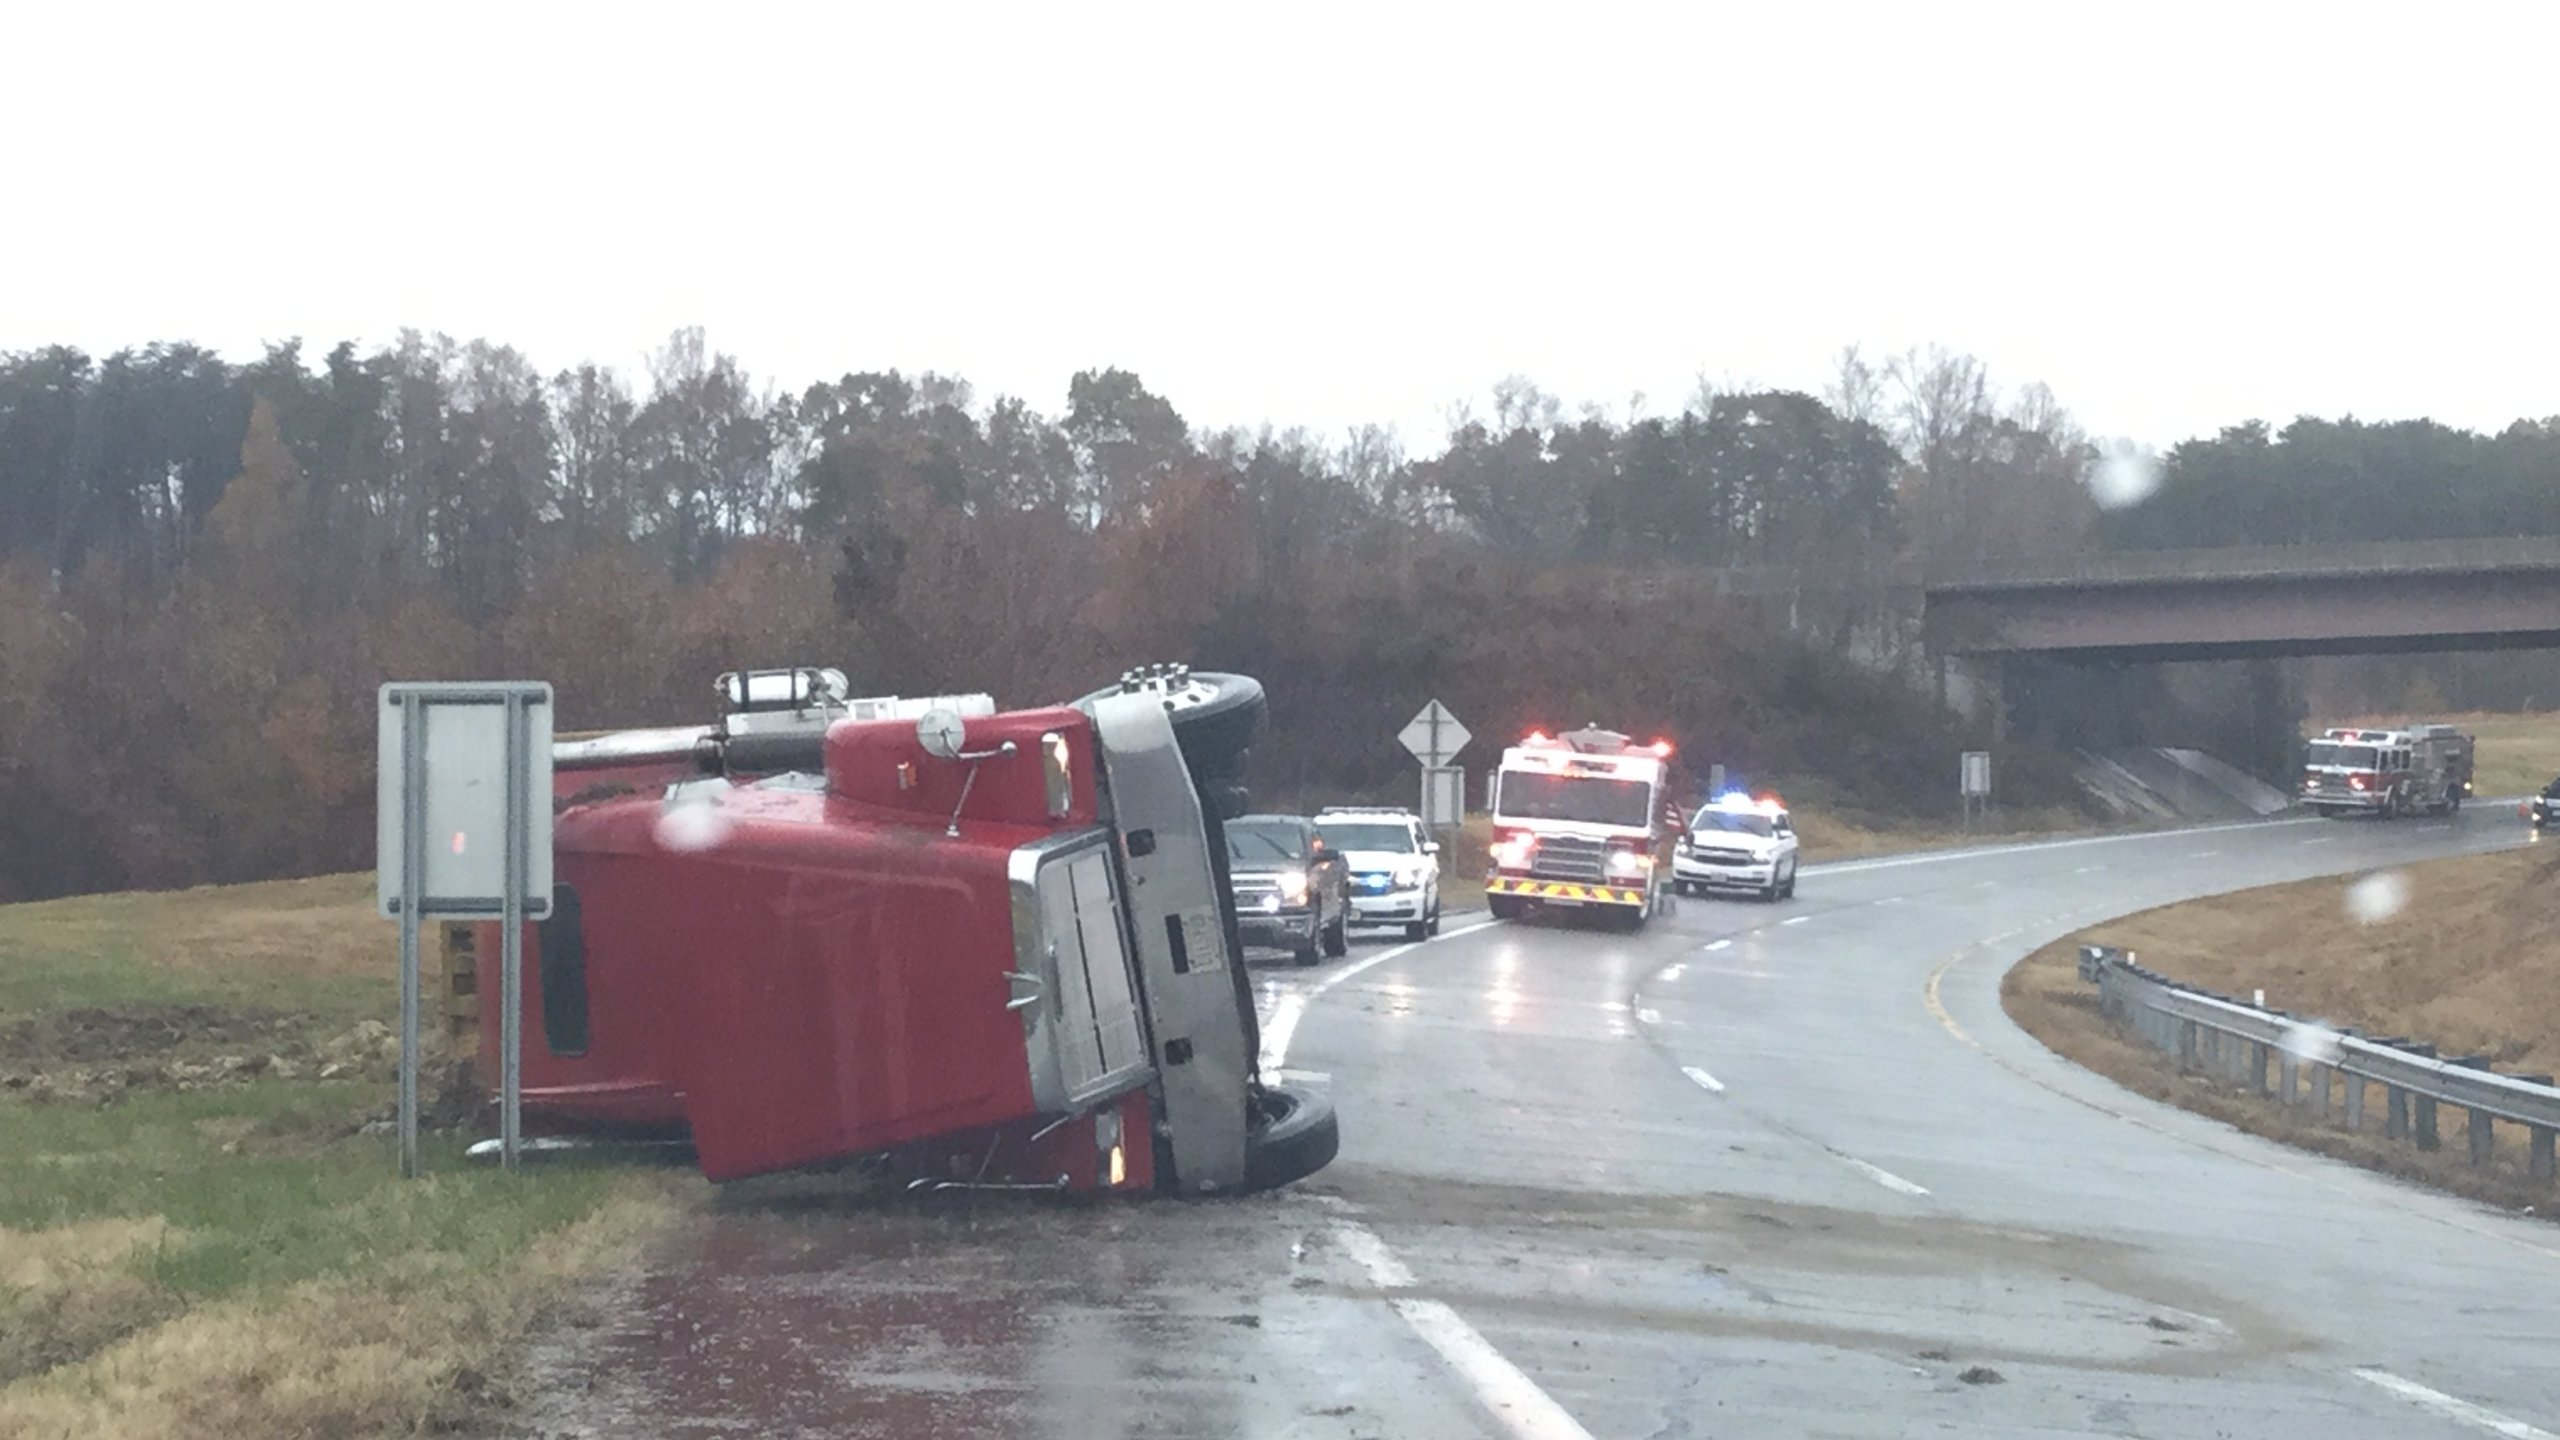 This tractor-trailer overturned on the off ramp of the Danville Expressway headed toward Greensboro, North Carolina. (Photo: Courtesy Danville Fire Department)